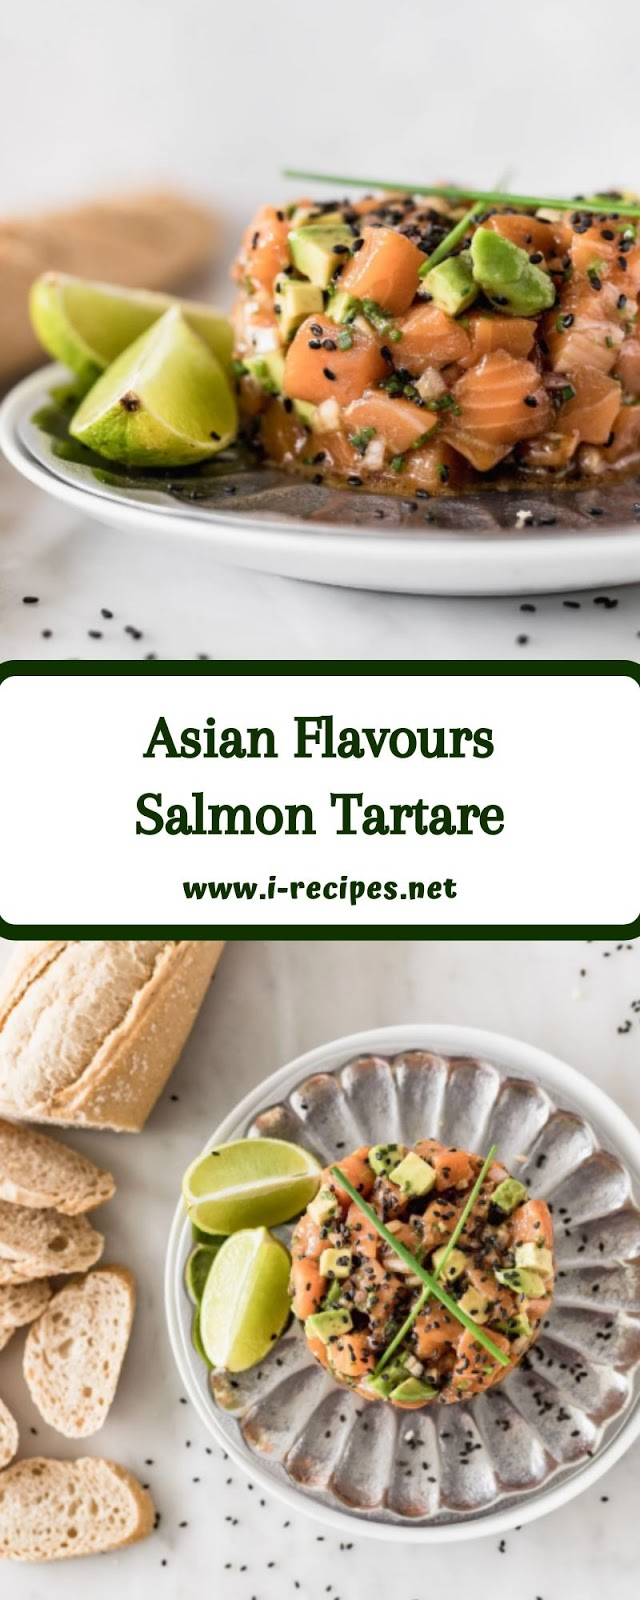 Asian Flavours Salmon Tartare